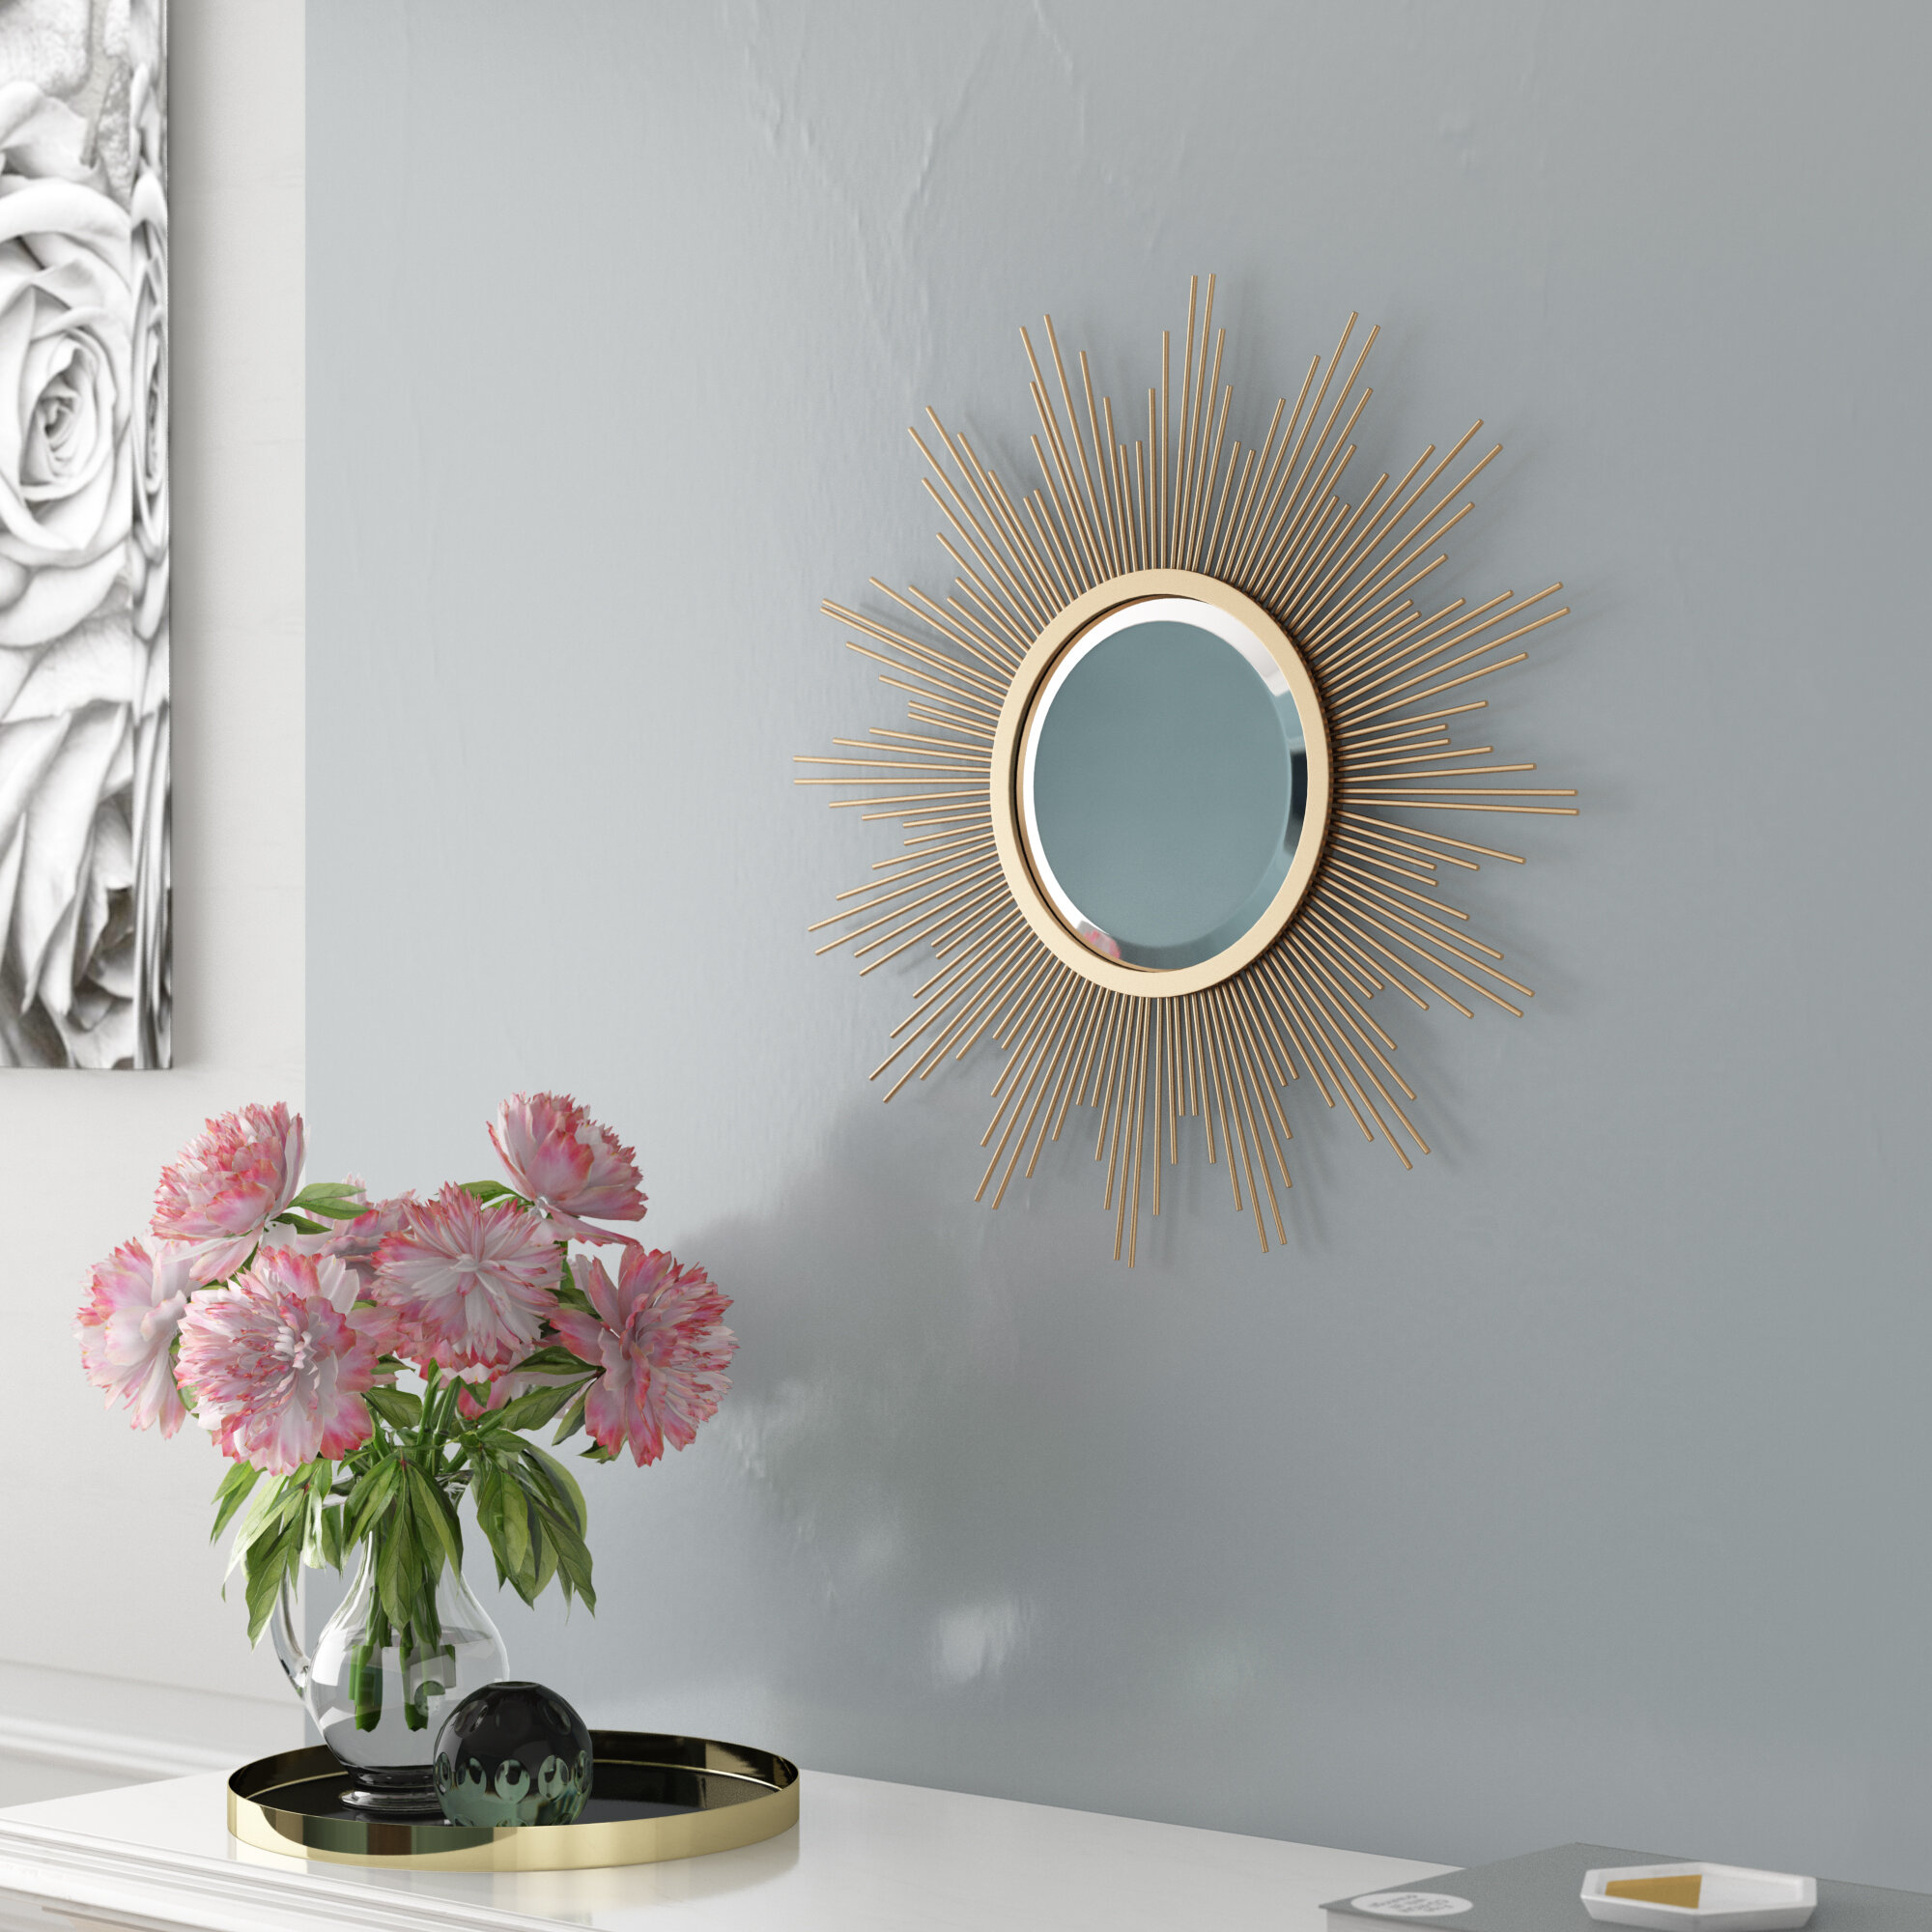 Glasser Starburst Modern & Contemporary Beveled Wall Mirror Intended For Dandre Wall Mirrors (Image 5 of 20)